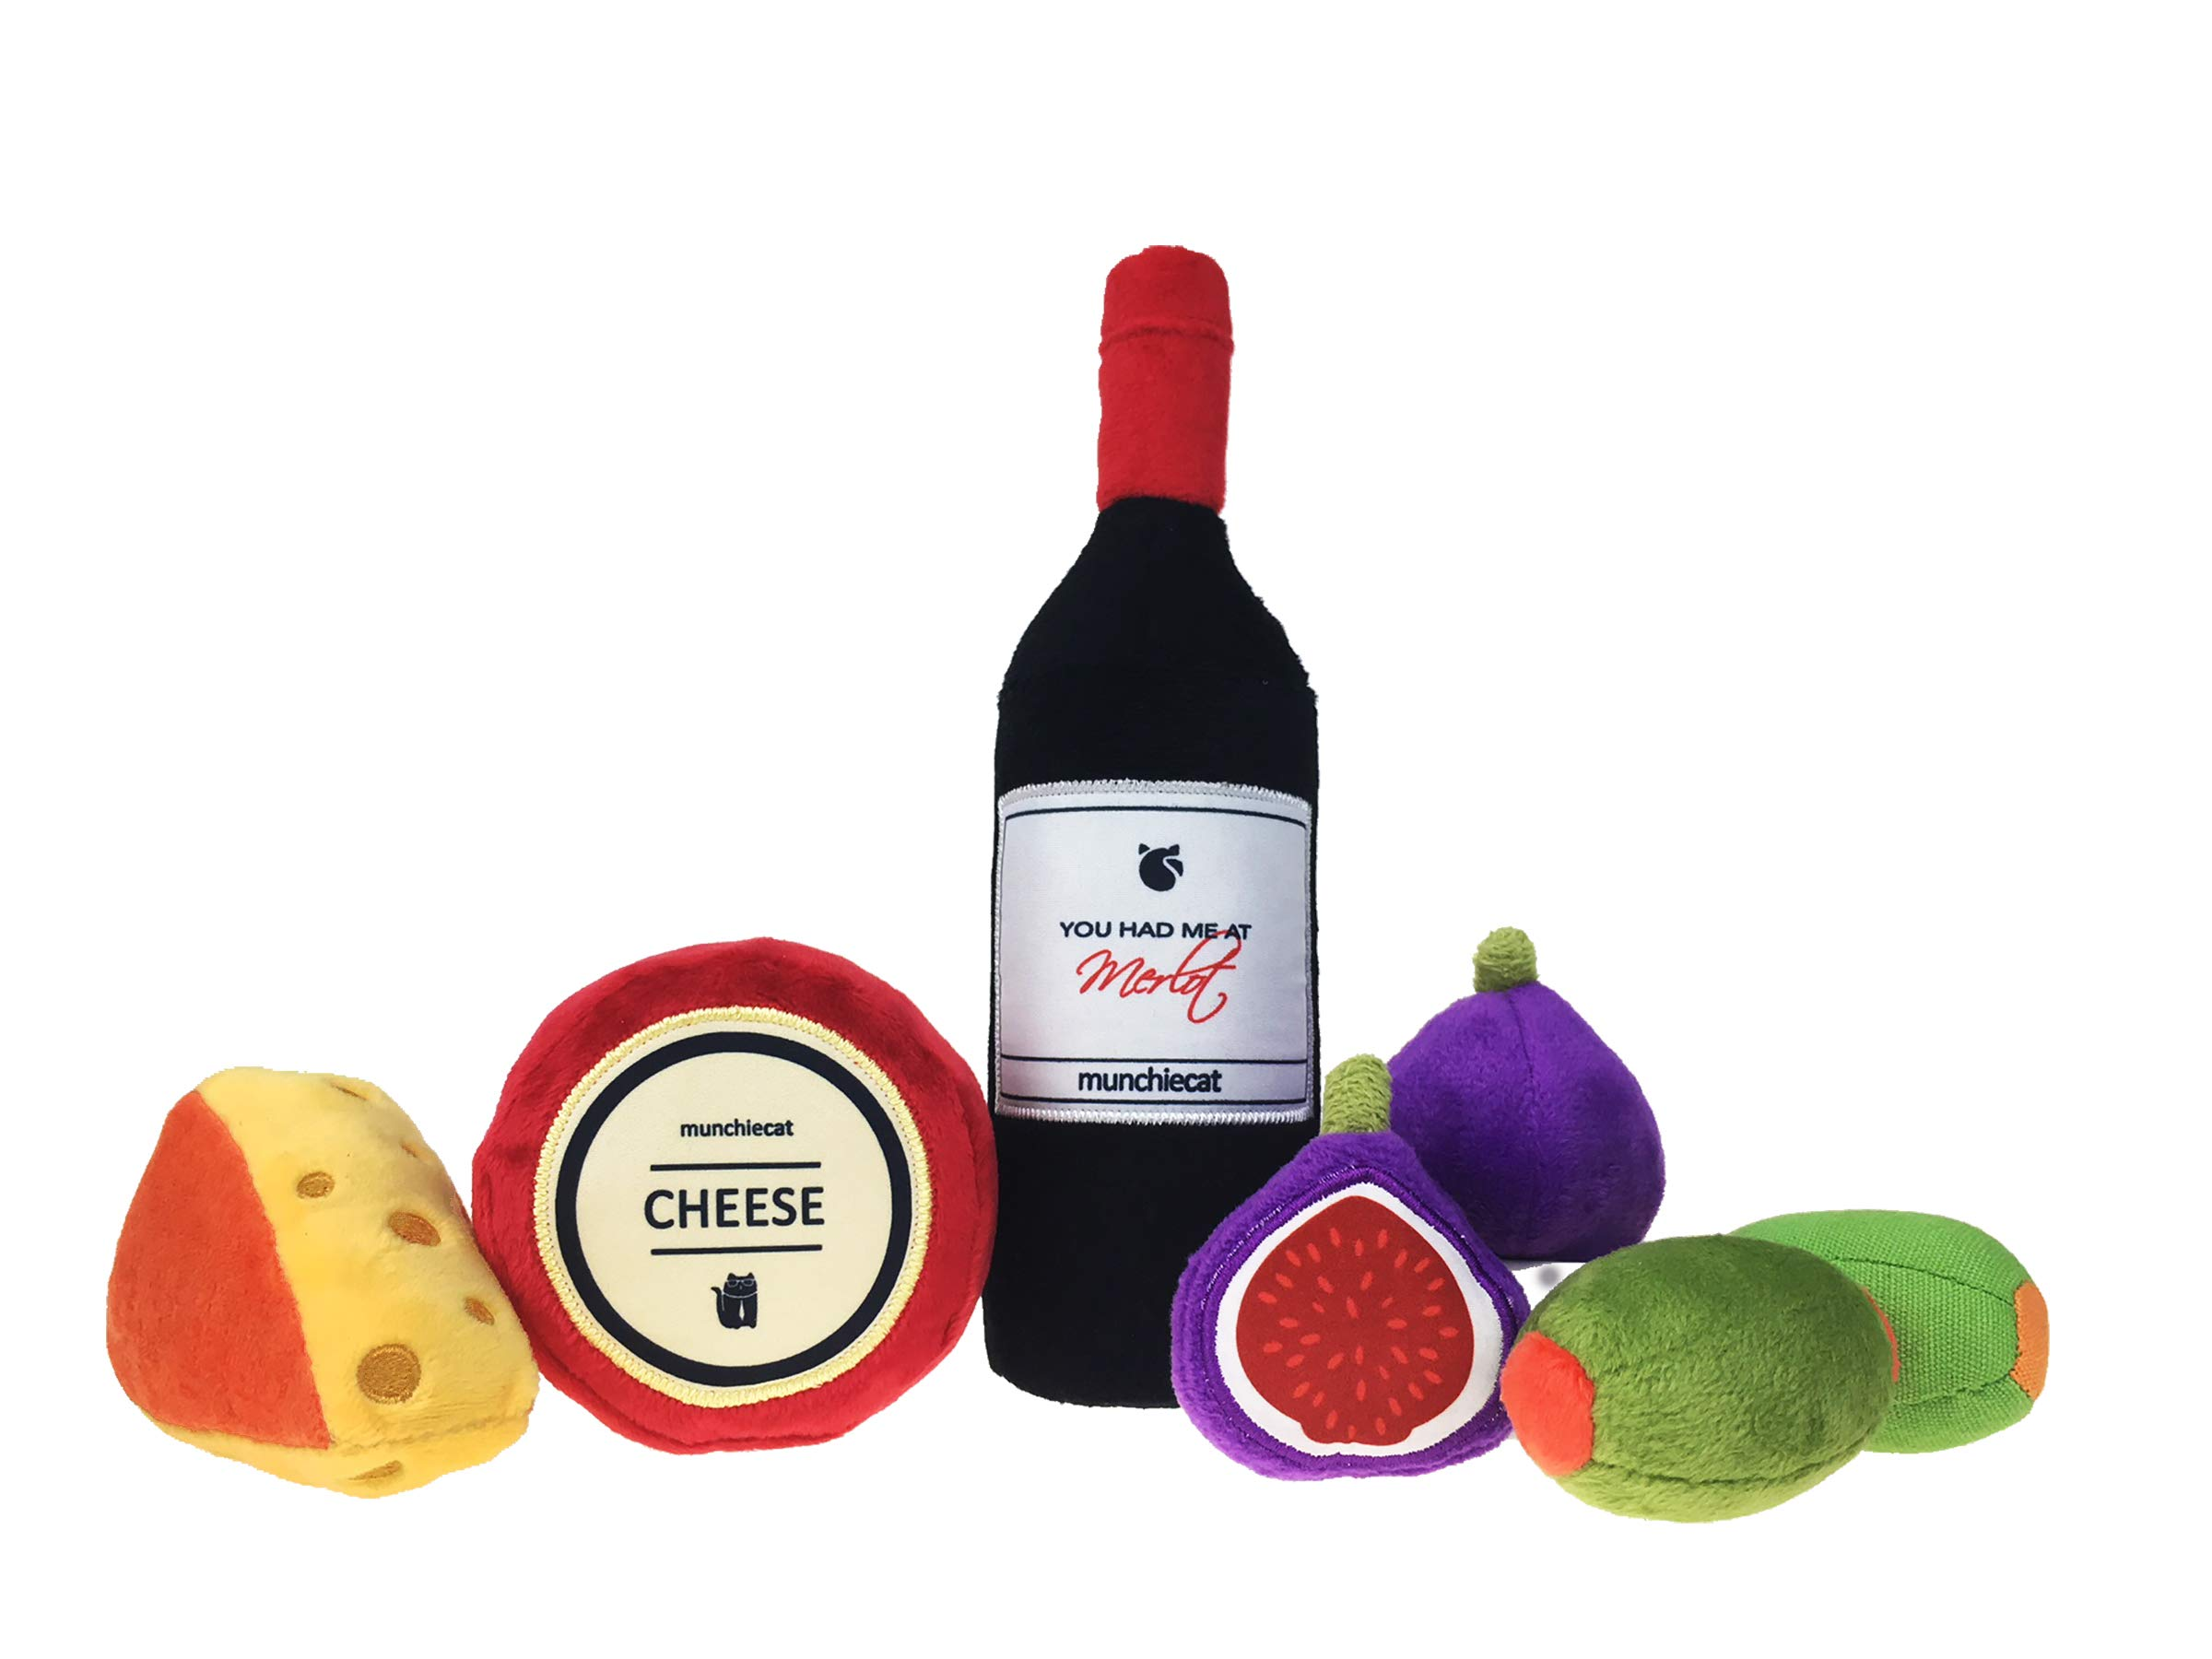 munchiecat Wine and Cheese Cat Toys 7 Piece Variety Set | Wine Bottle, Cheese, Figs & Olives | Organic Catnip, Crinkle Paper & Rattle Bells by munchiecat